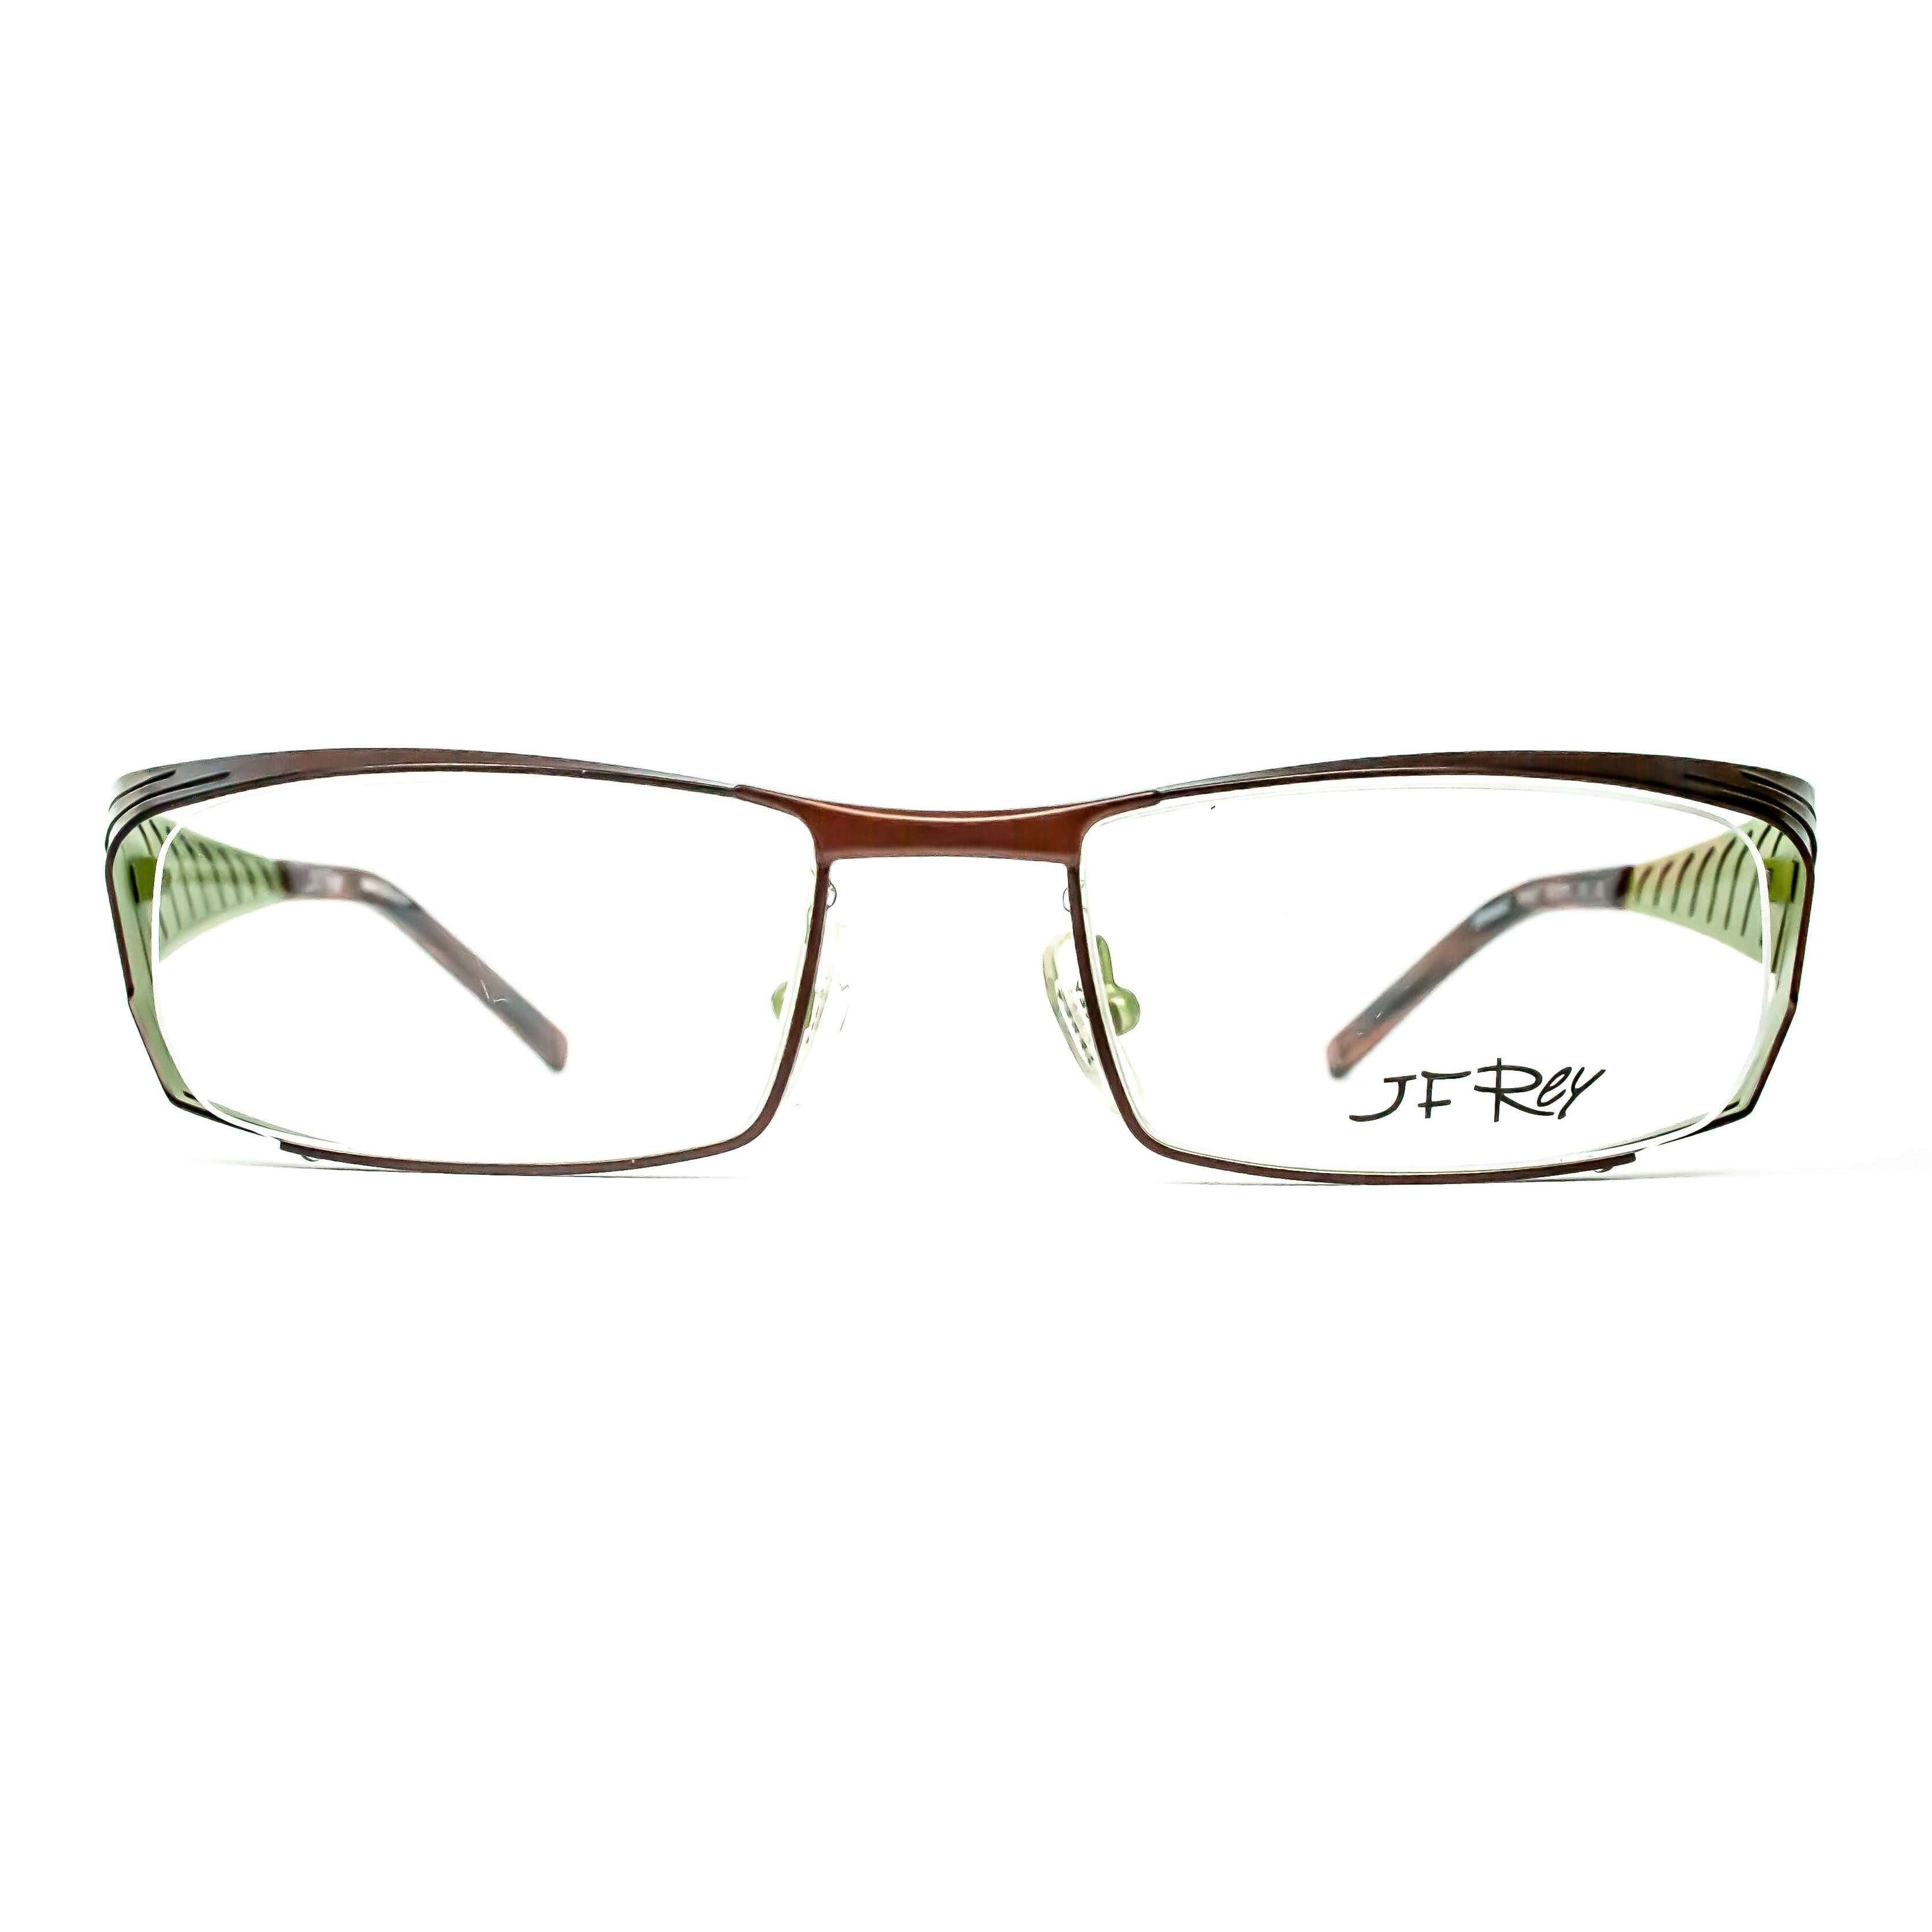 JF Rey Model 2308 9542 Brown And Green Metal Glasses